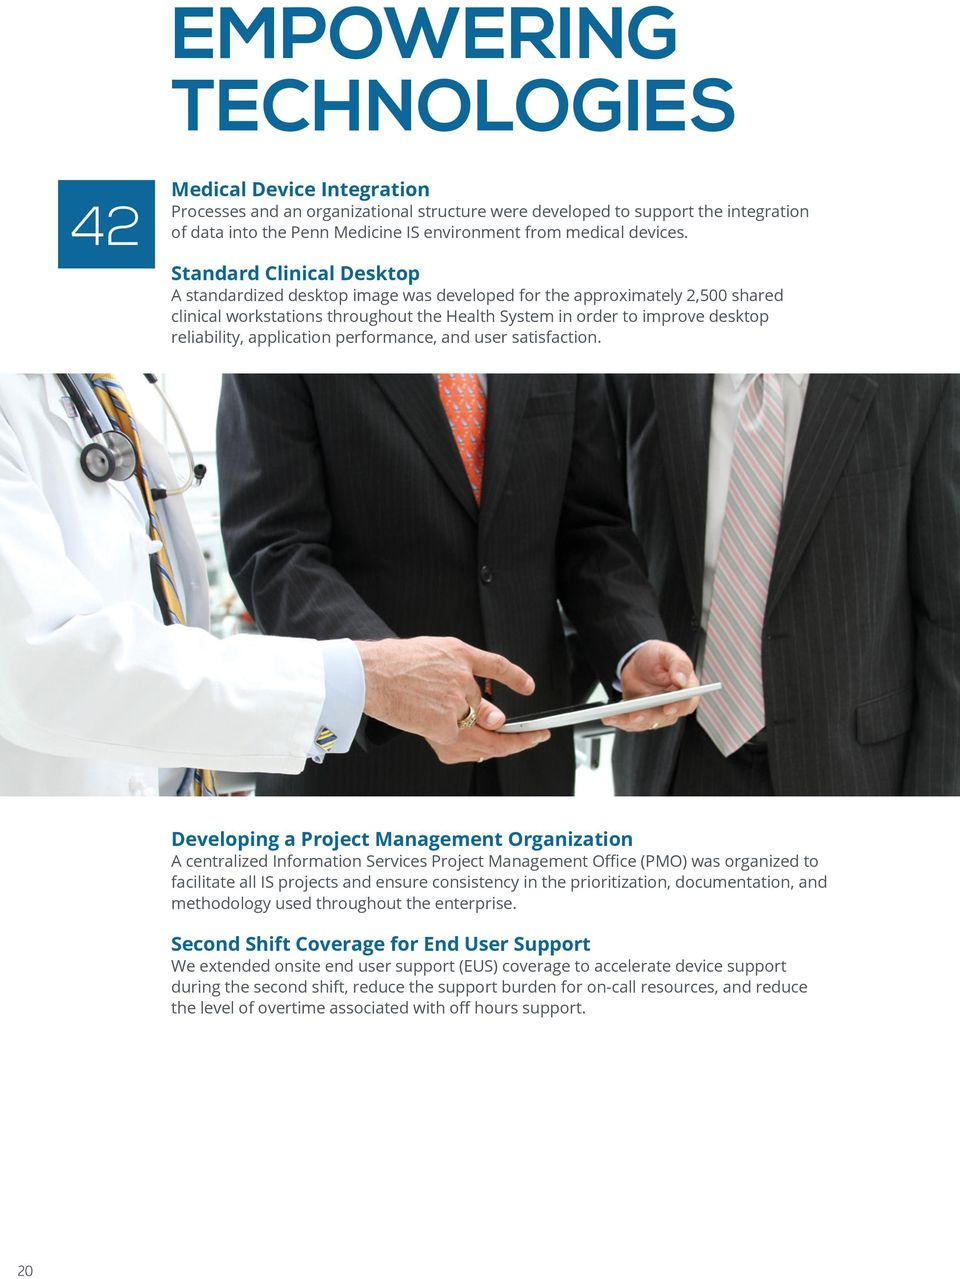 THE STATE OF PENN MEDICINE CORPORATE INFORMATION SERVICES